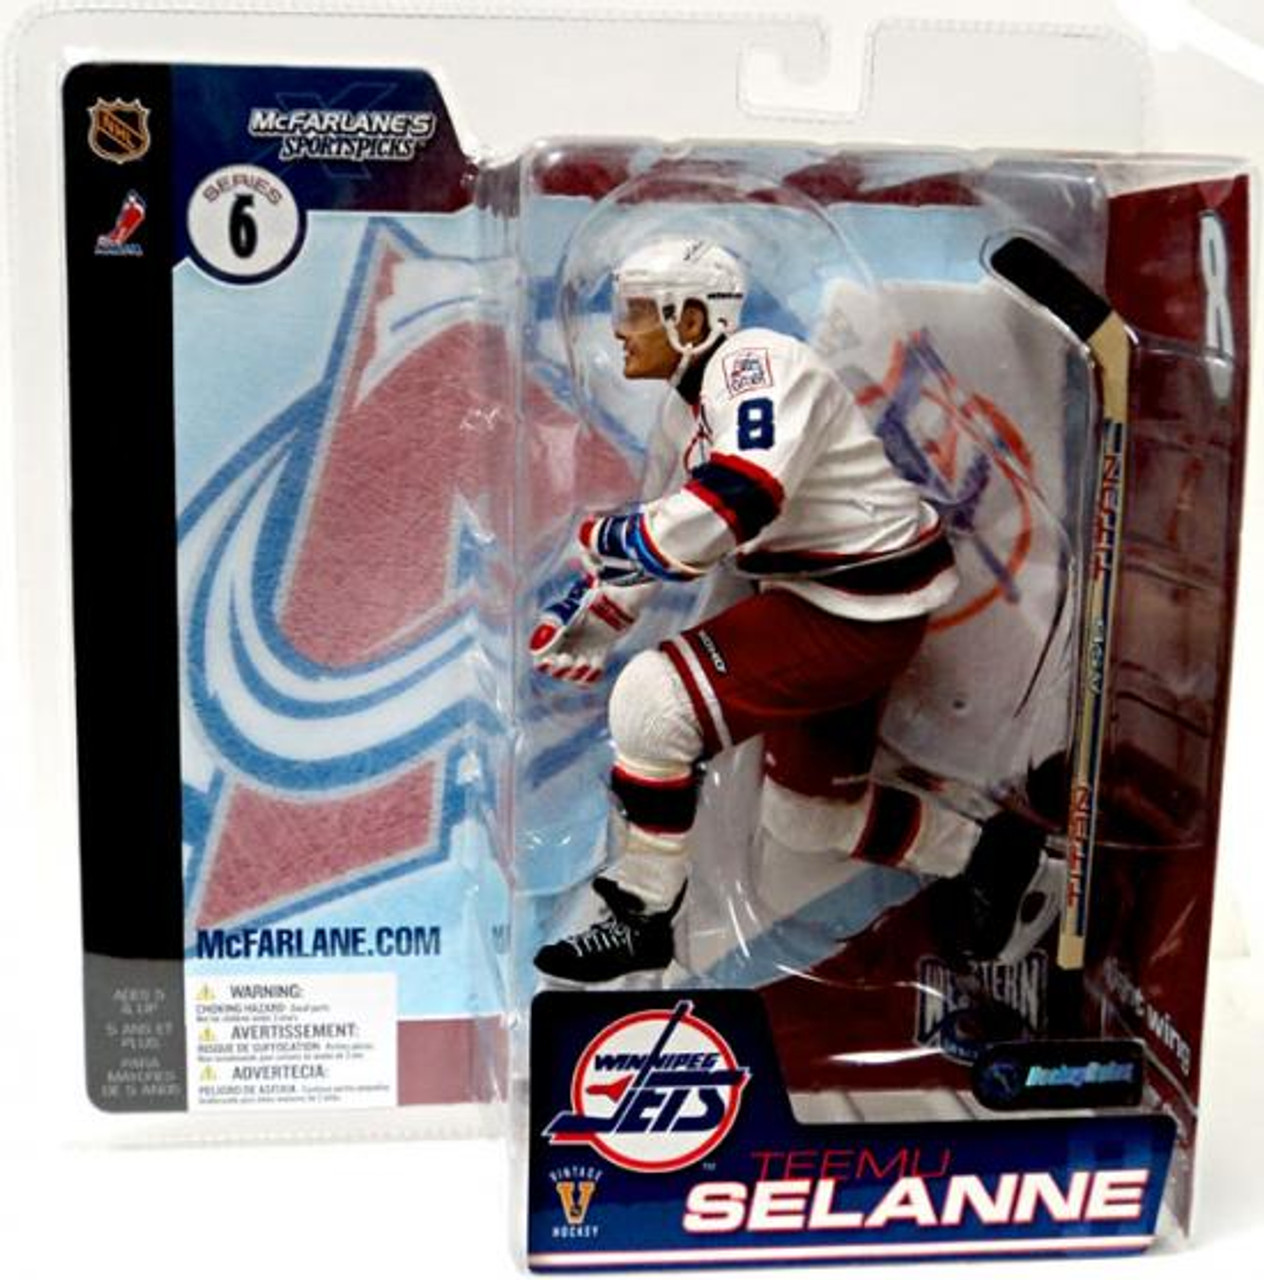 McFarlane Toys NHL Colorado Avalanche Sports Picks Series 6 Teemu Selanne Action Figure [White Jersey Red Pants Variant]